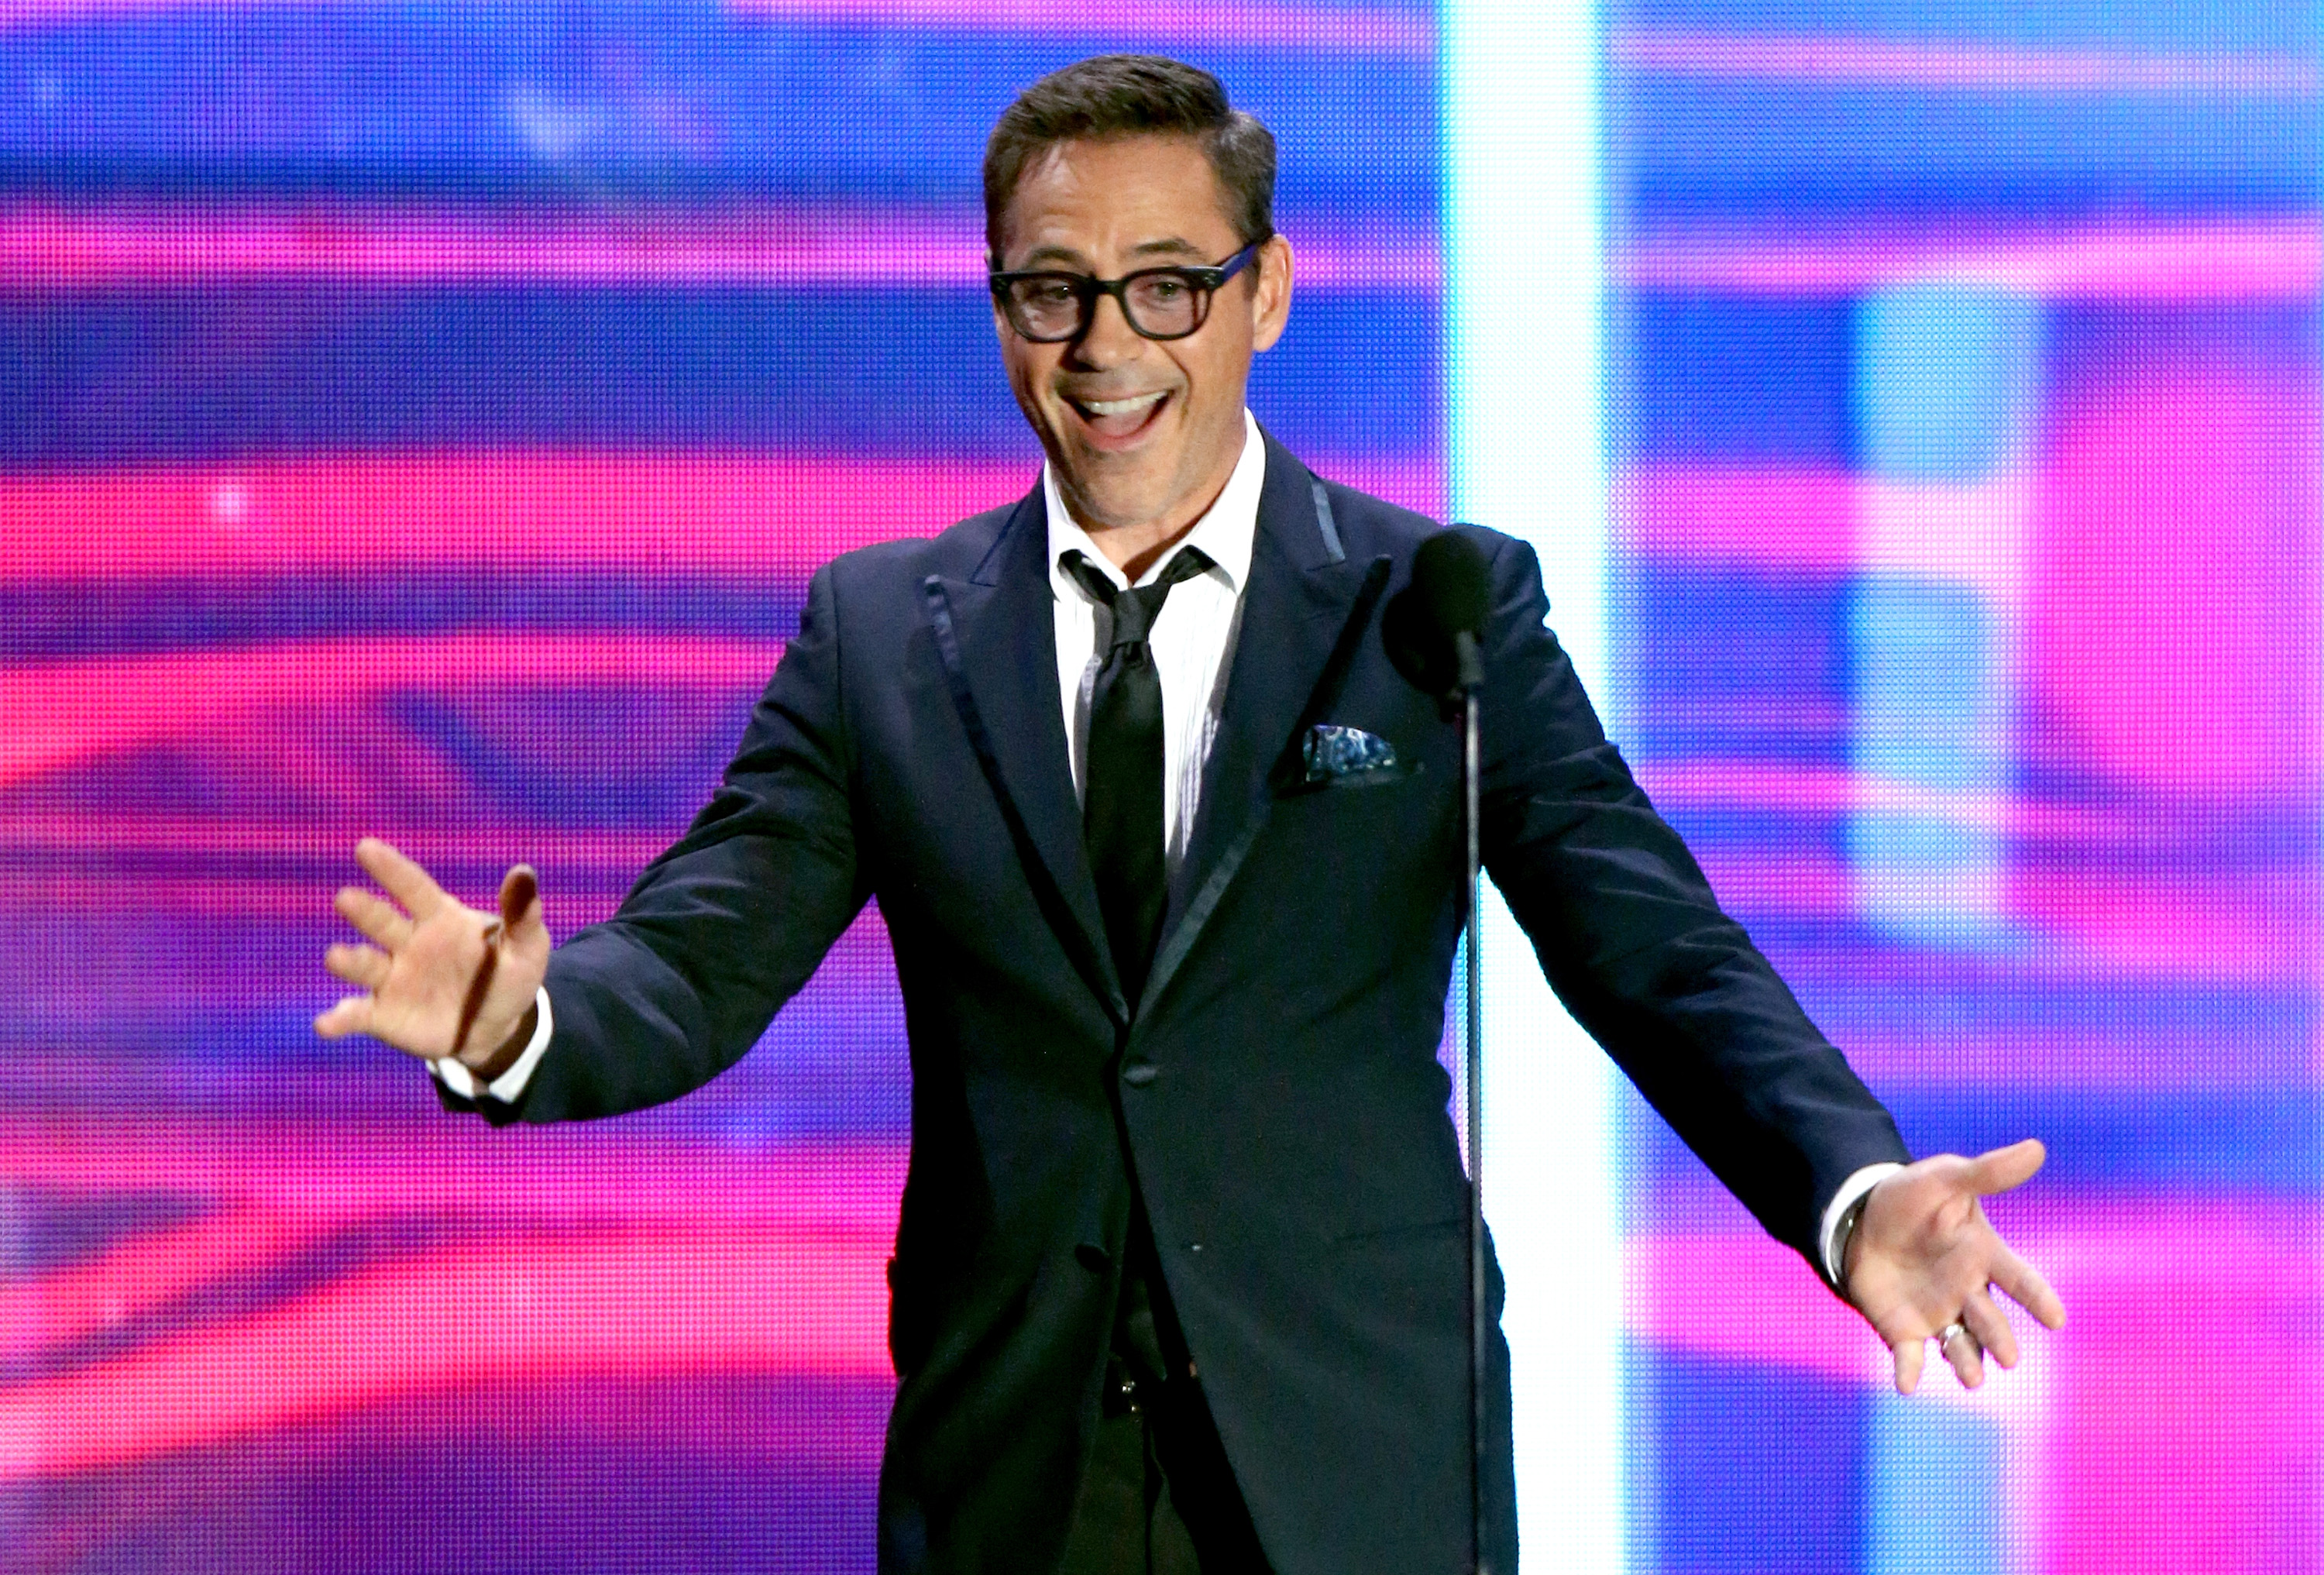 BEVERLY HILLS, CA - OCTOBER 30: Actor Robert Downey Jr. speaks onstage during the 2015 Jaguar Land Rover British Academy Britannia Awards presented by American Airlines at The Beverly Hilton Hotel on October 30, 2015 in Beverly Hills, California. (Photo by Mark Davis/Getty Images)